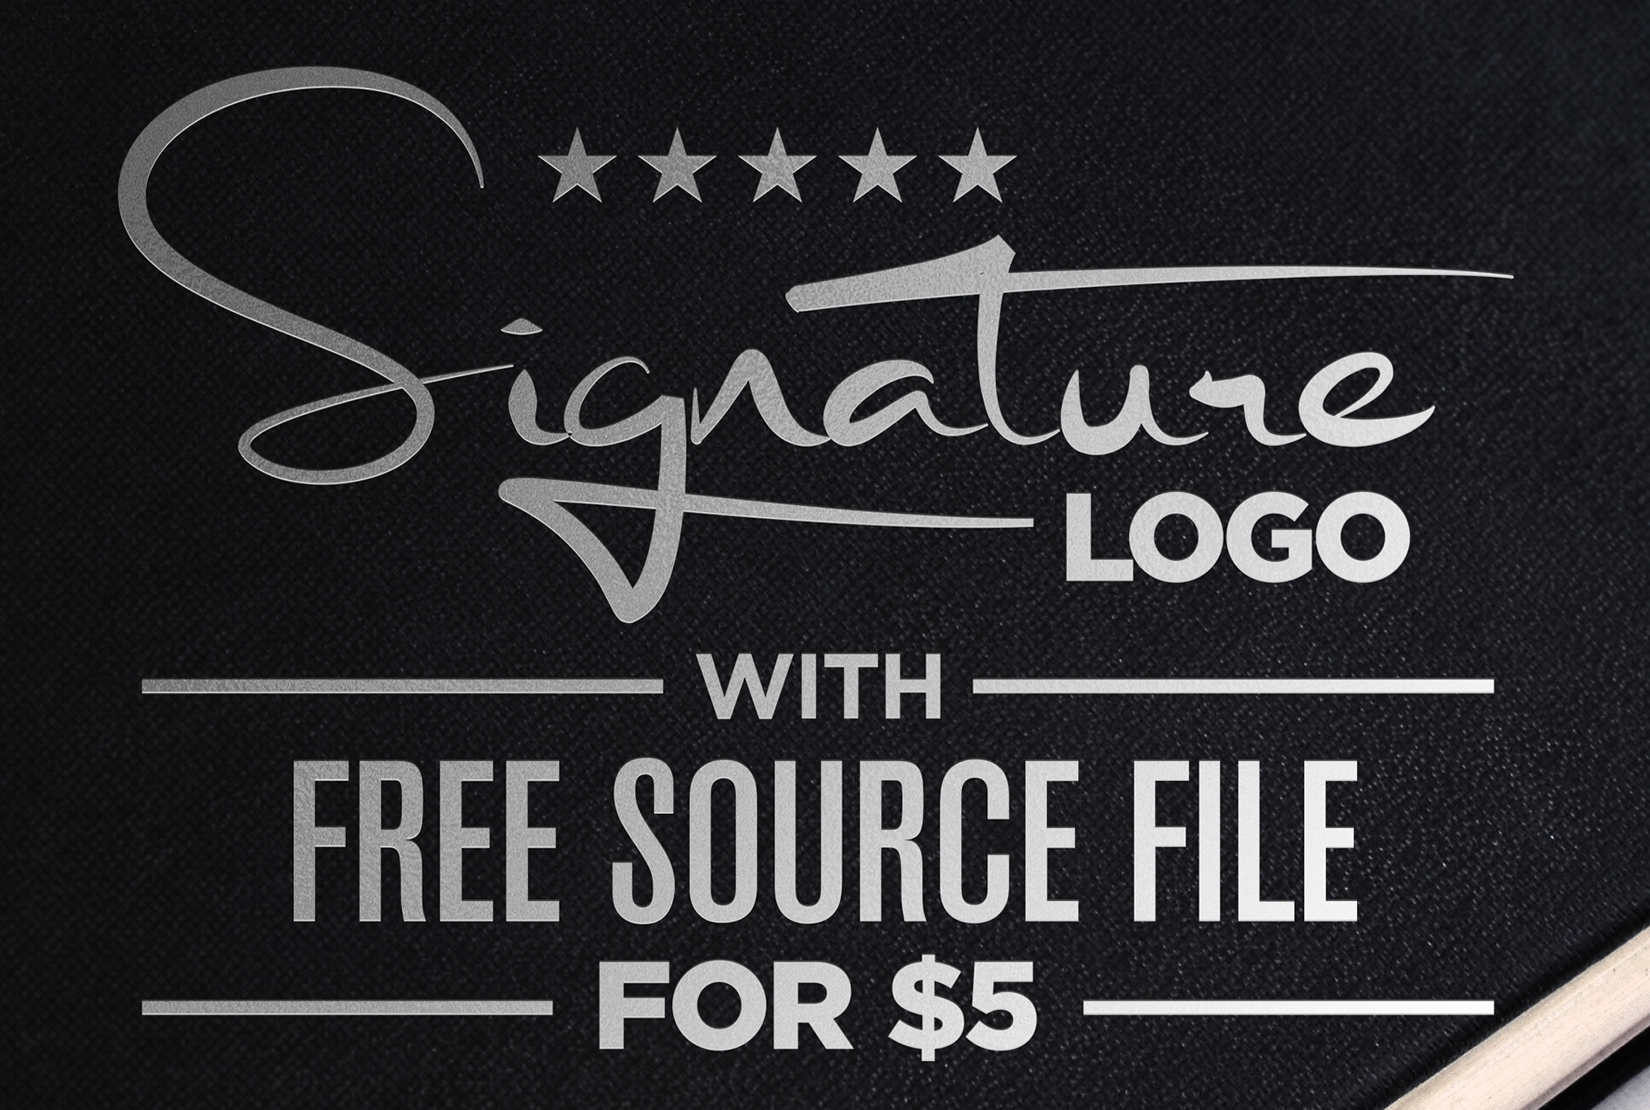 design 2 stylish signature logo with free source file